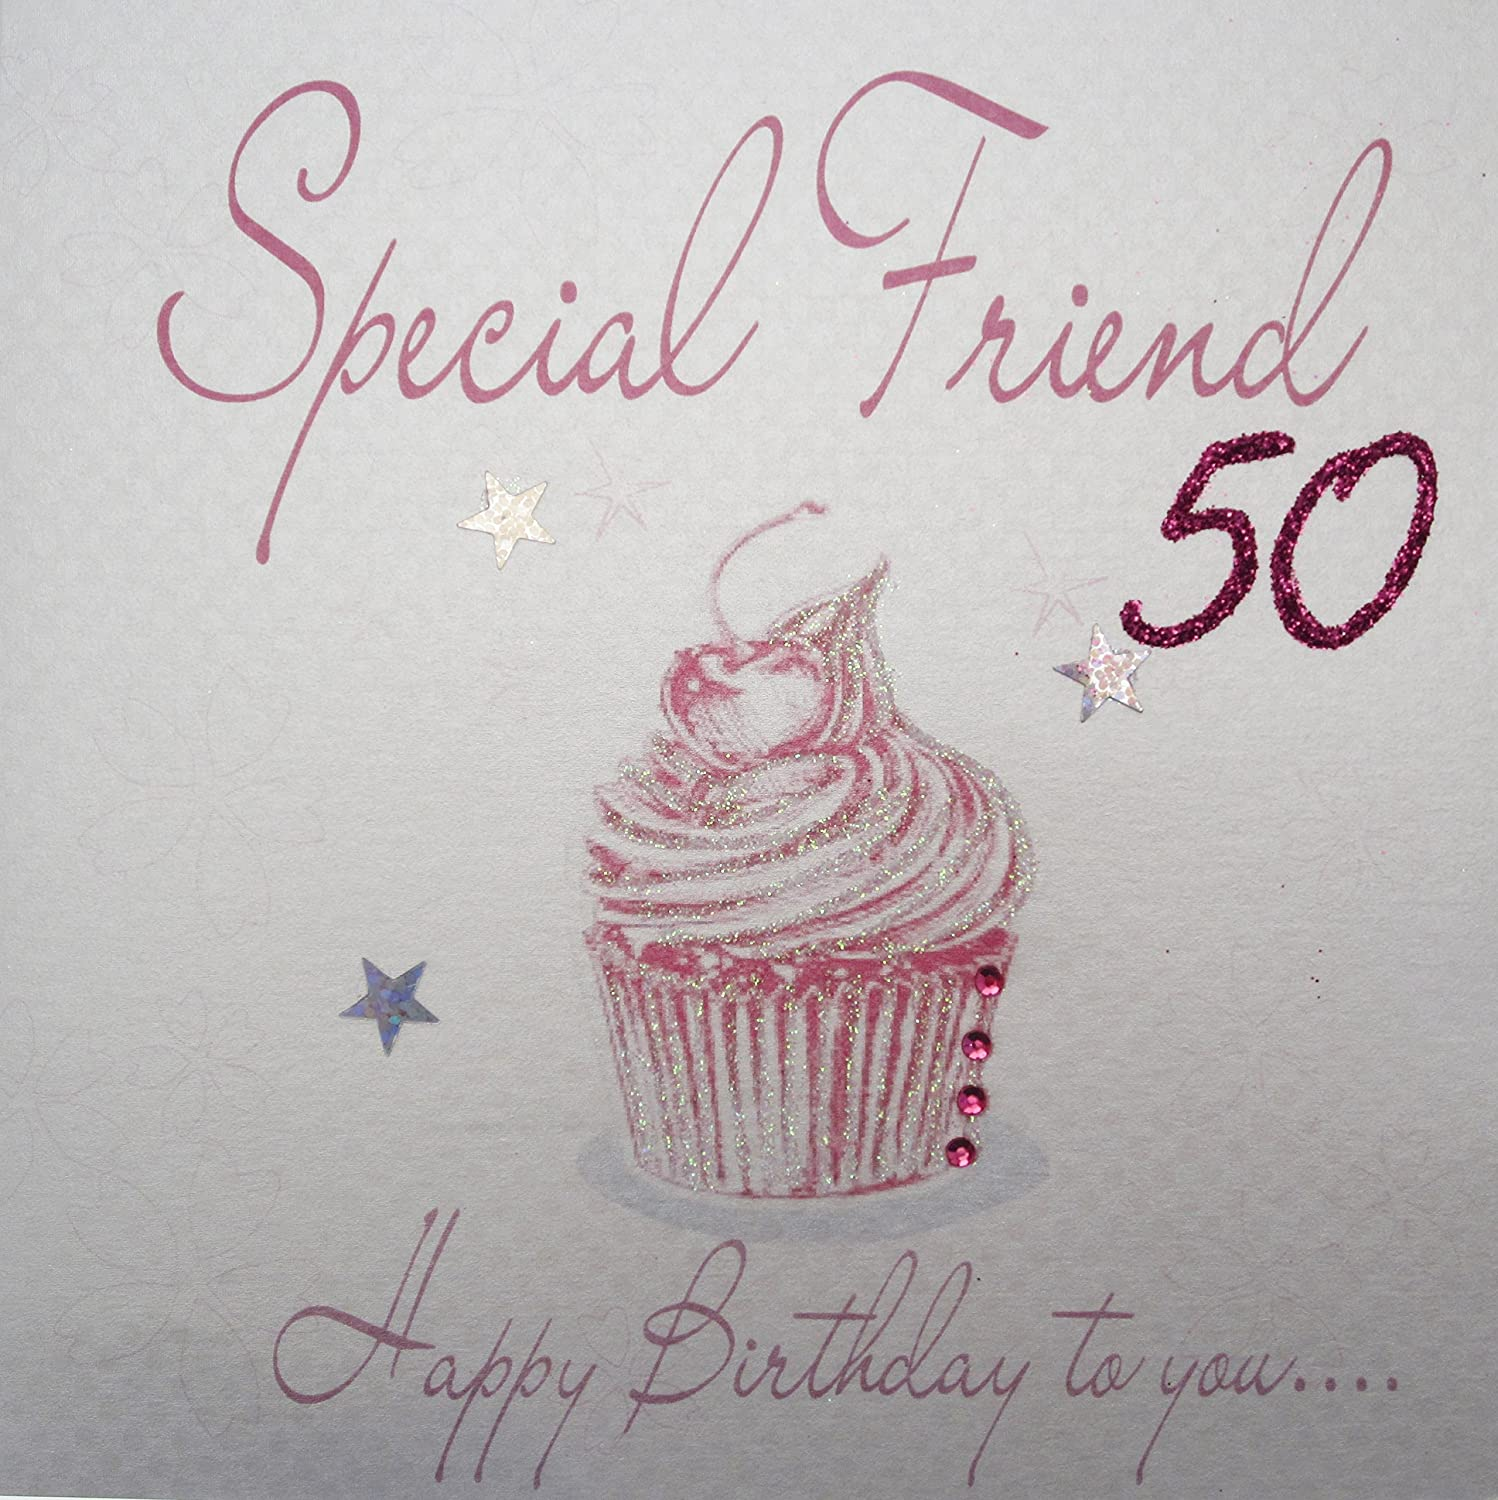 WHITE COTTON CARDS Special Friend 50 Happy Handmade 50th Birthday Card Pink Cupcake